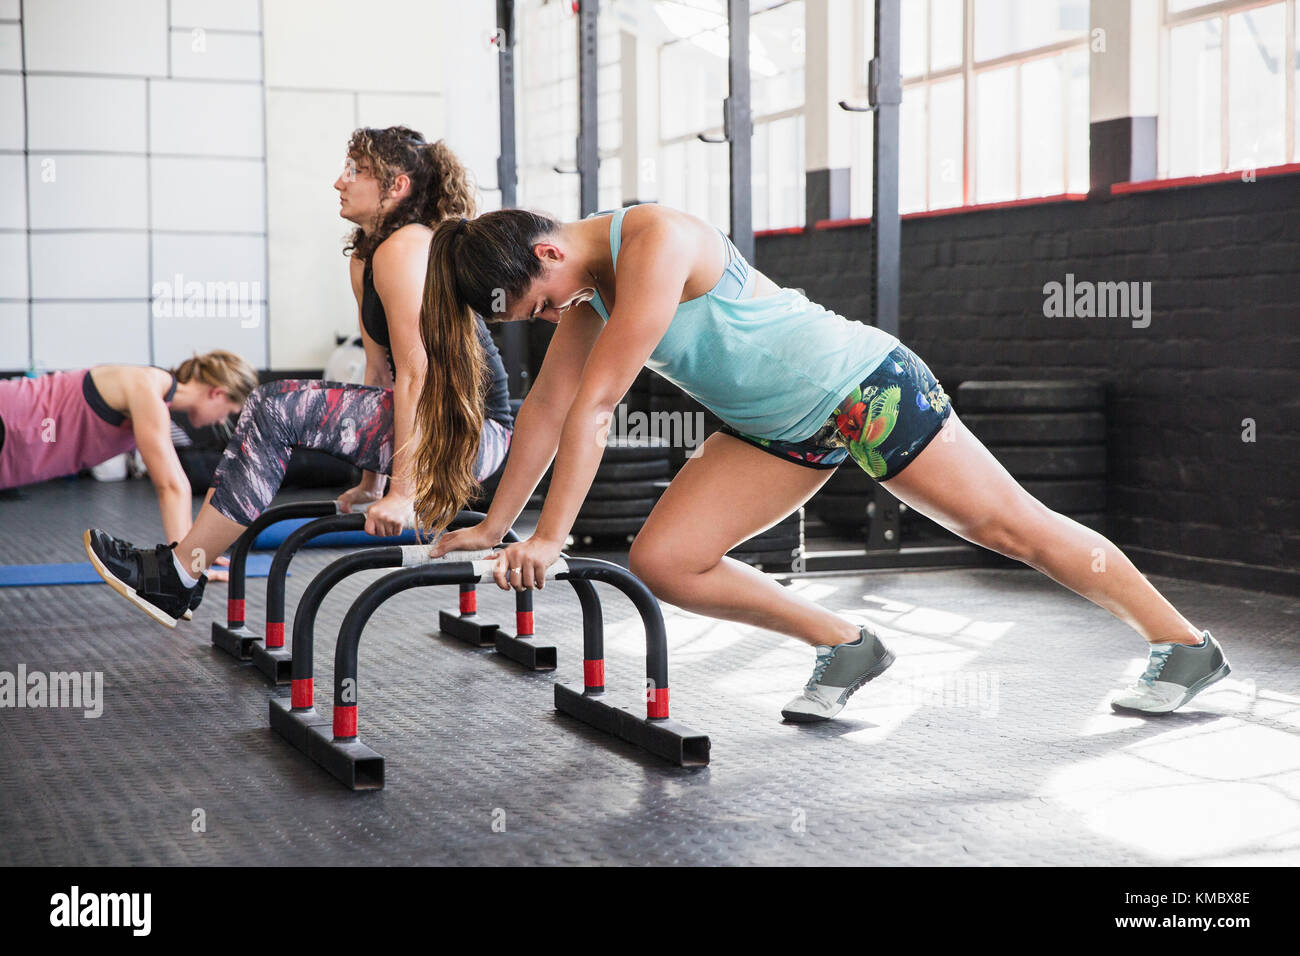 Young woman stretching legs at equipment in gym - Stock Image